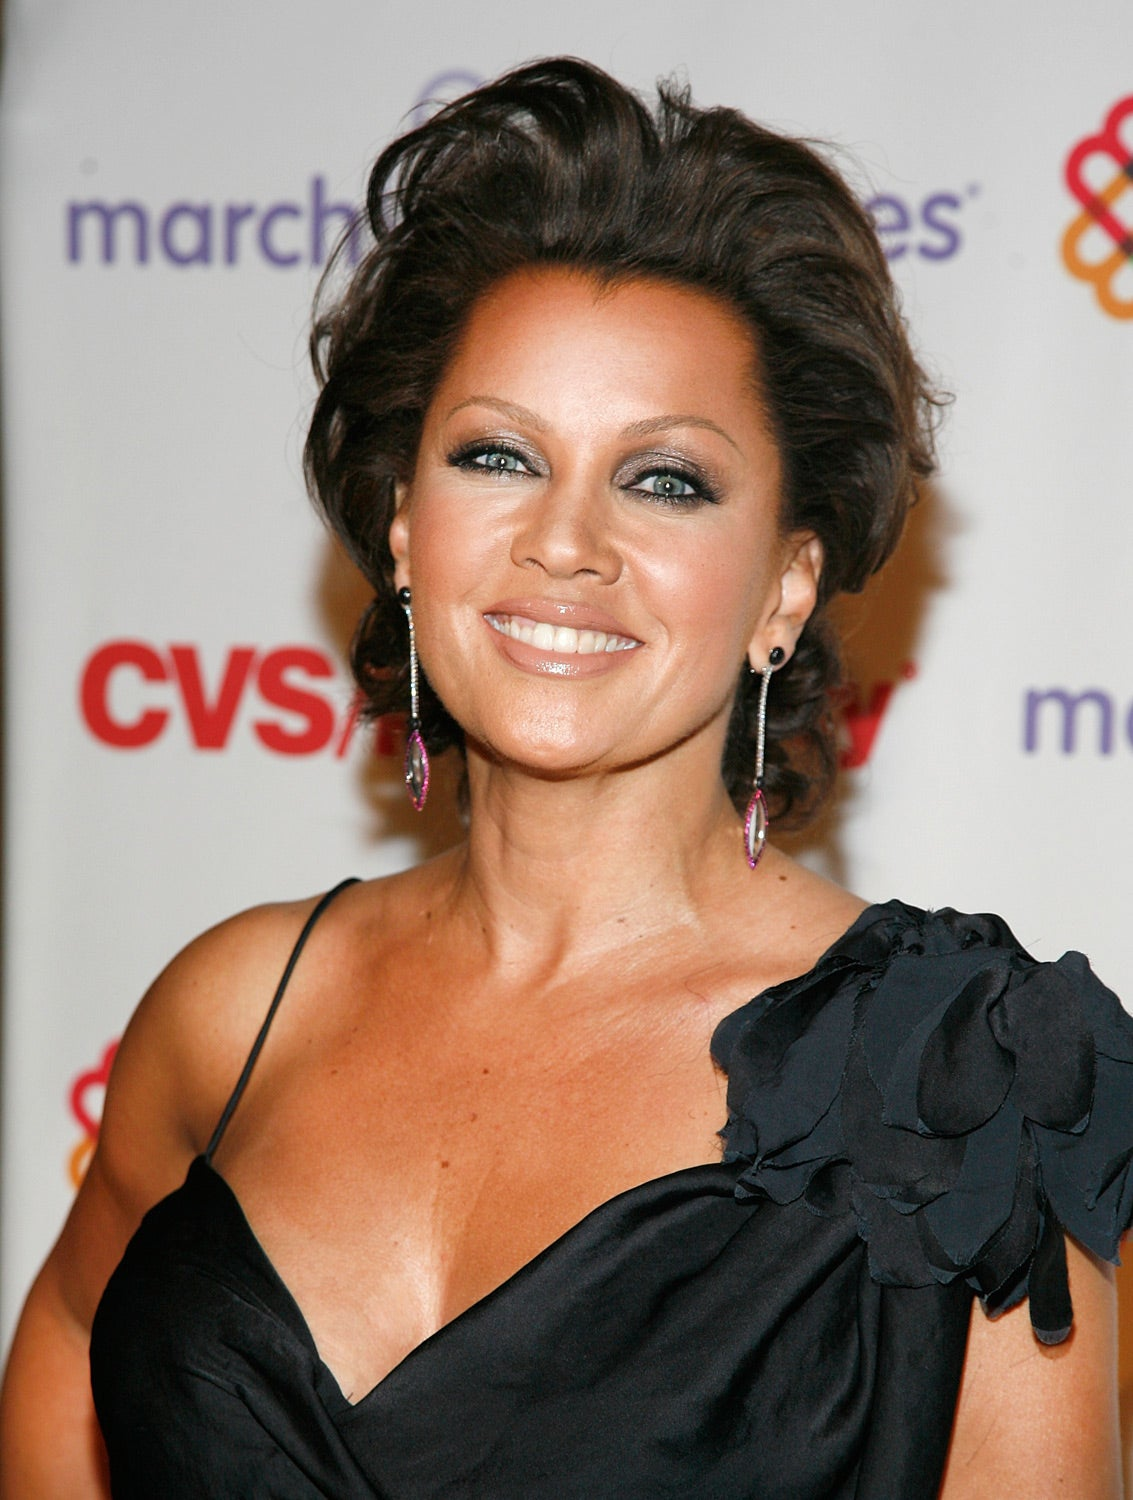 Vanessa Williams Returns to Judge Miss America Pageant, 32 Years After Scandal